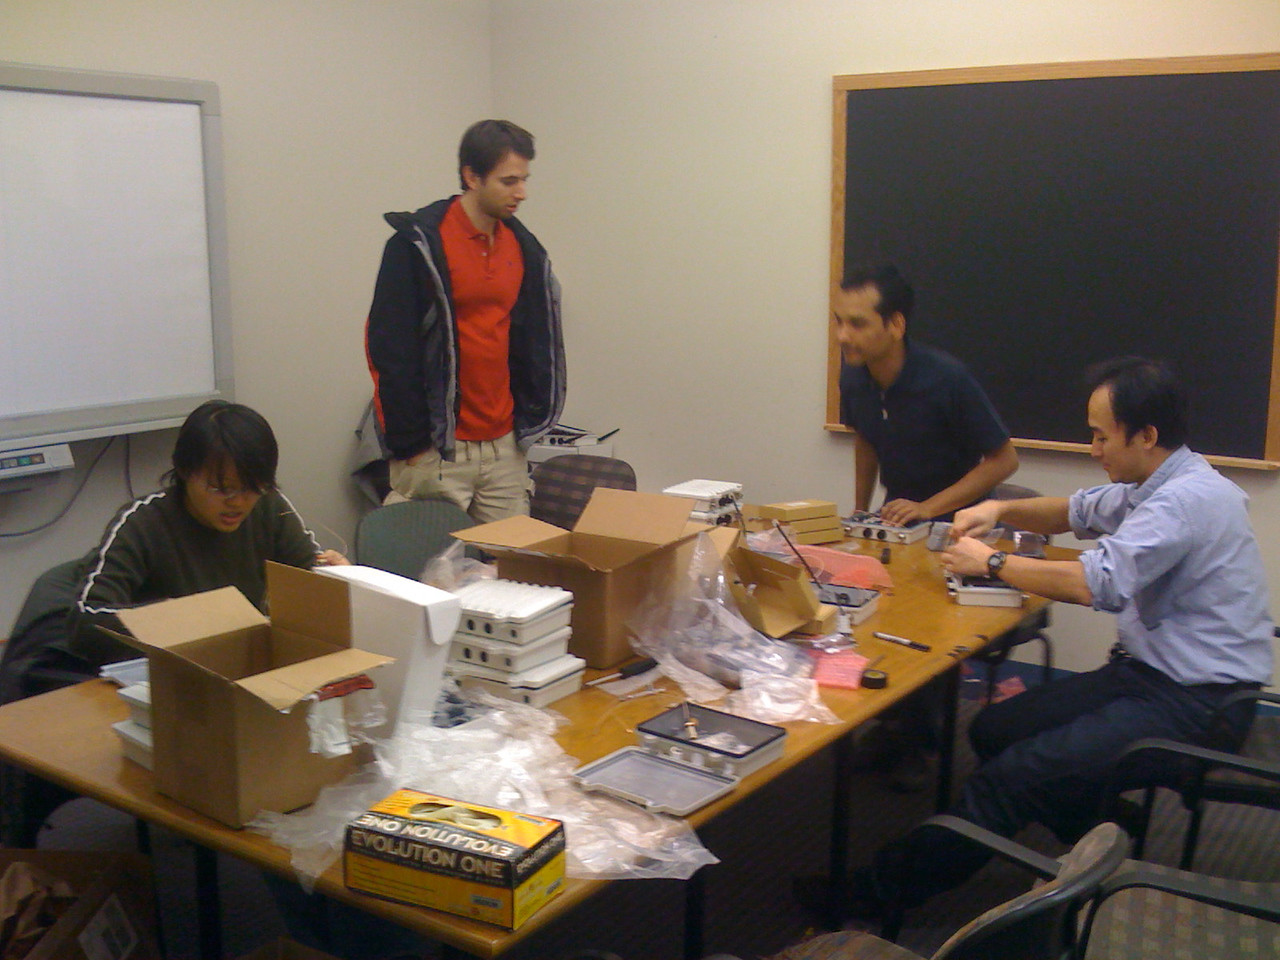 The Stanford Experimental Wifi deployment team at work putting together 90 access points.